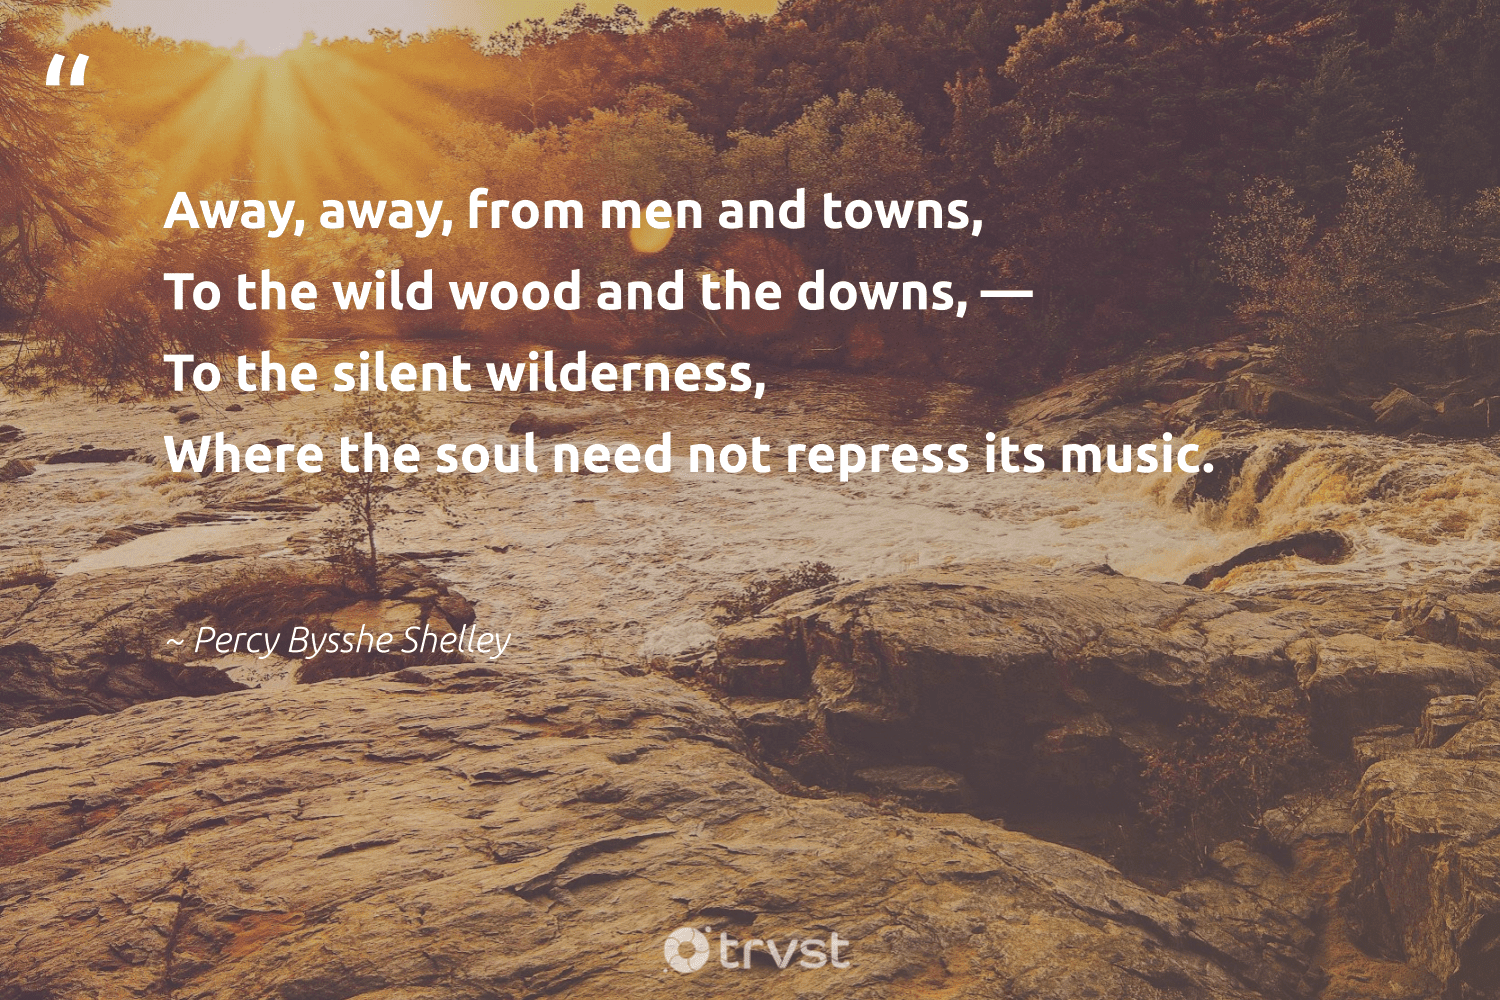 """""""Away, away, from men and towns, To the wild wood and the downs, — To the silent wilderness, Where the soul need not repress its music.""""  - Percy Bysshe Shelley #trvst #quotes #deforestation #wood #trees #gogreen #naturelovers #planetearthfirst #treeplanting #eco #sustainability #bethechange"""